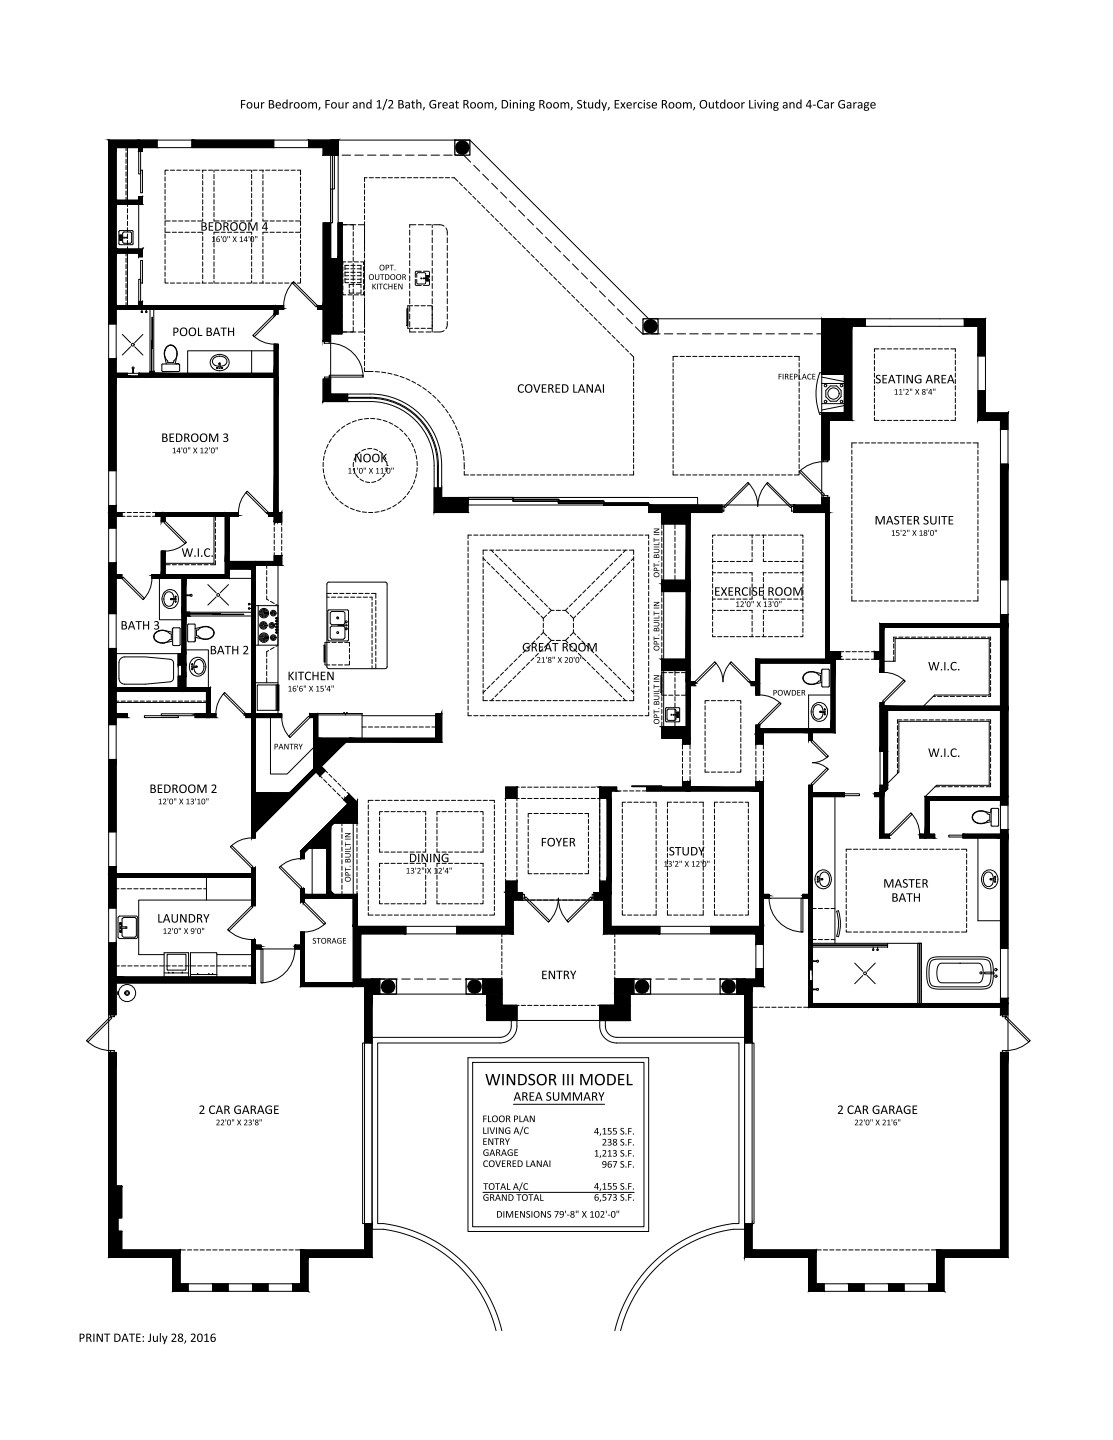 Windsor III Floorplan